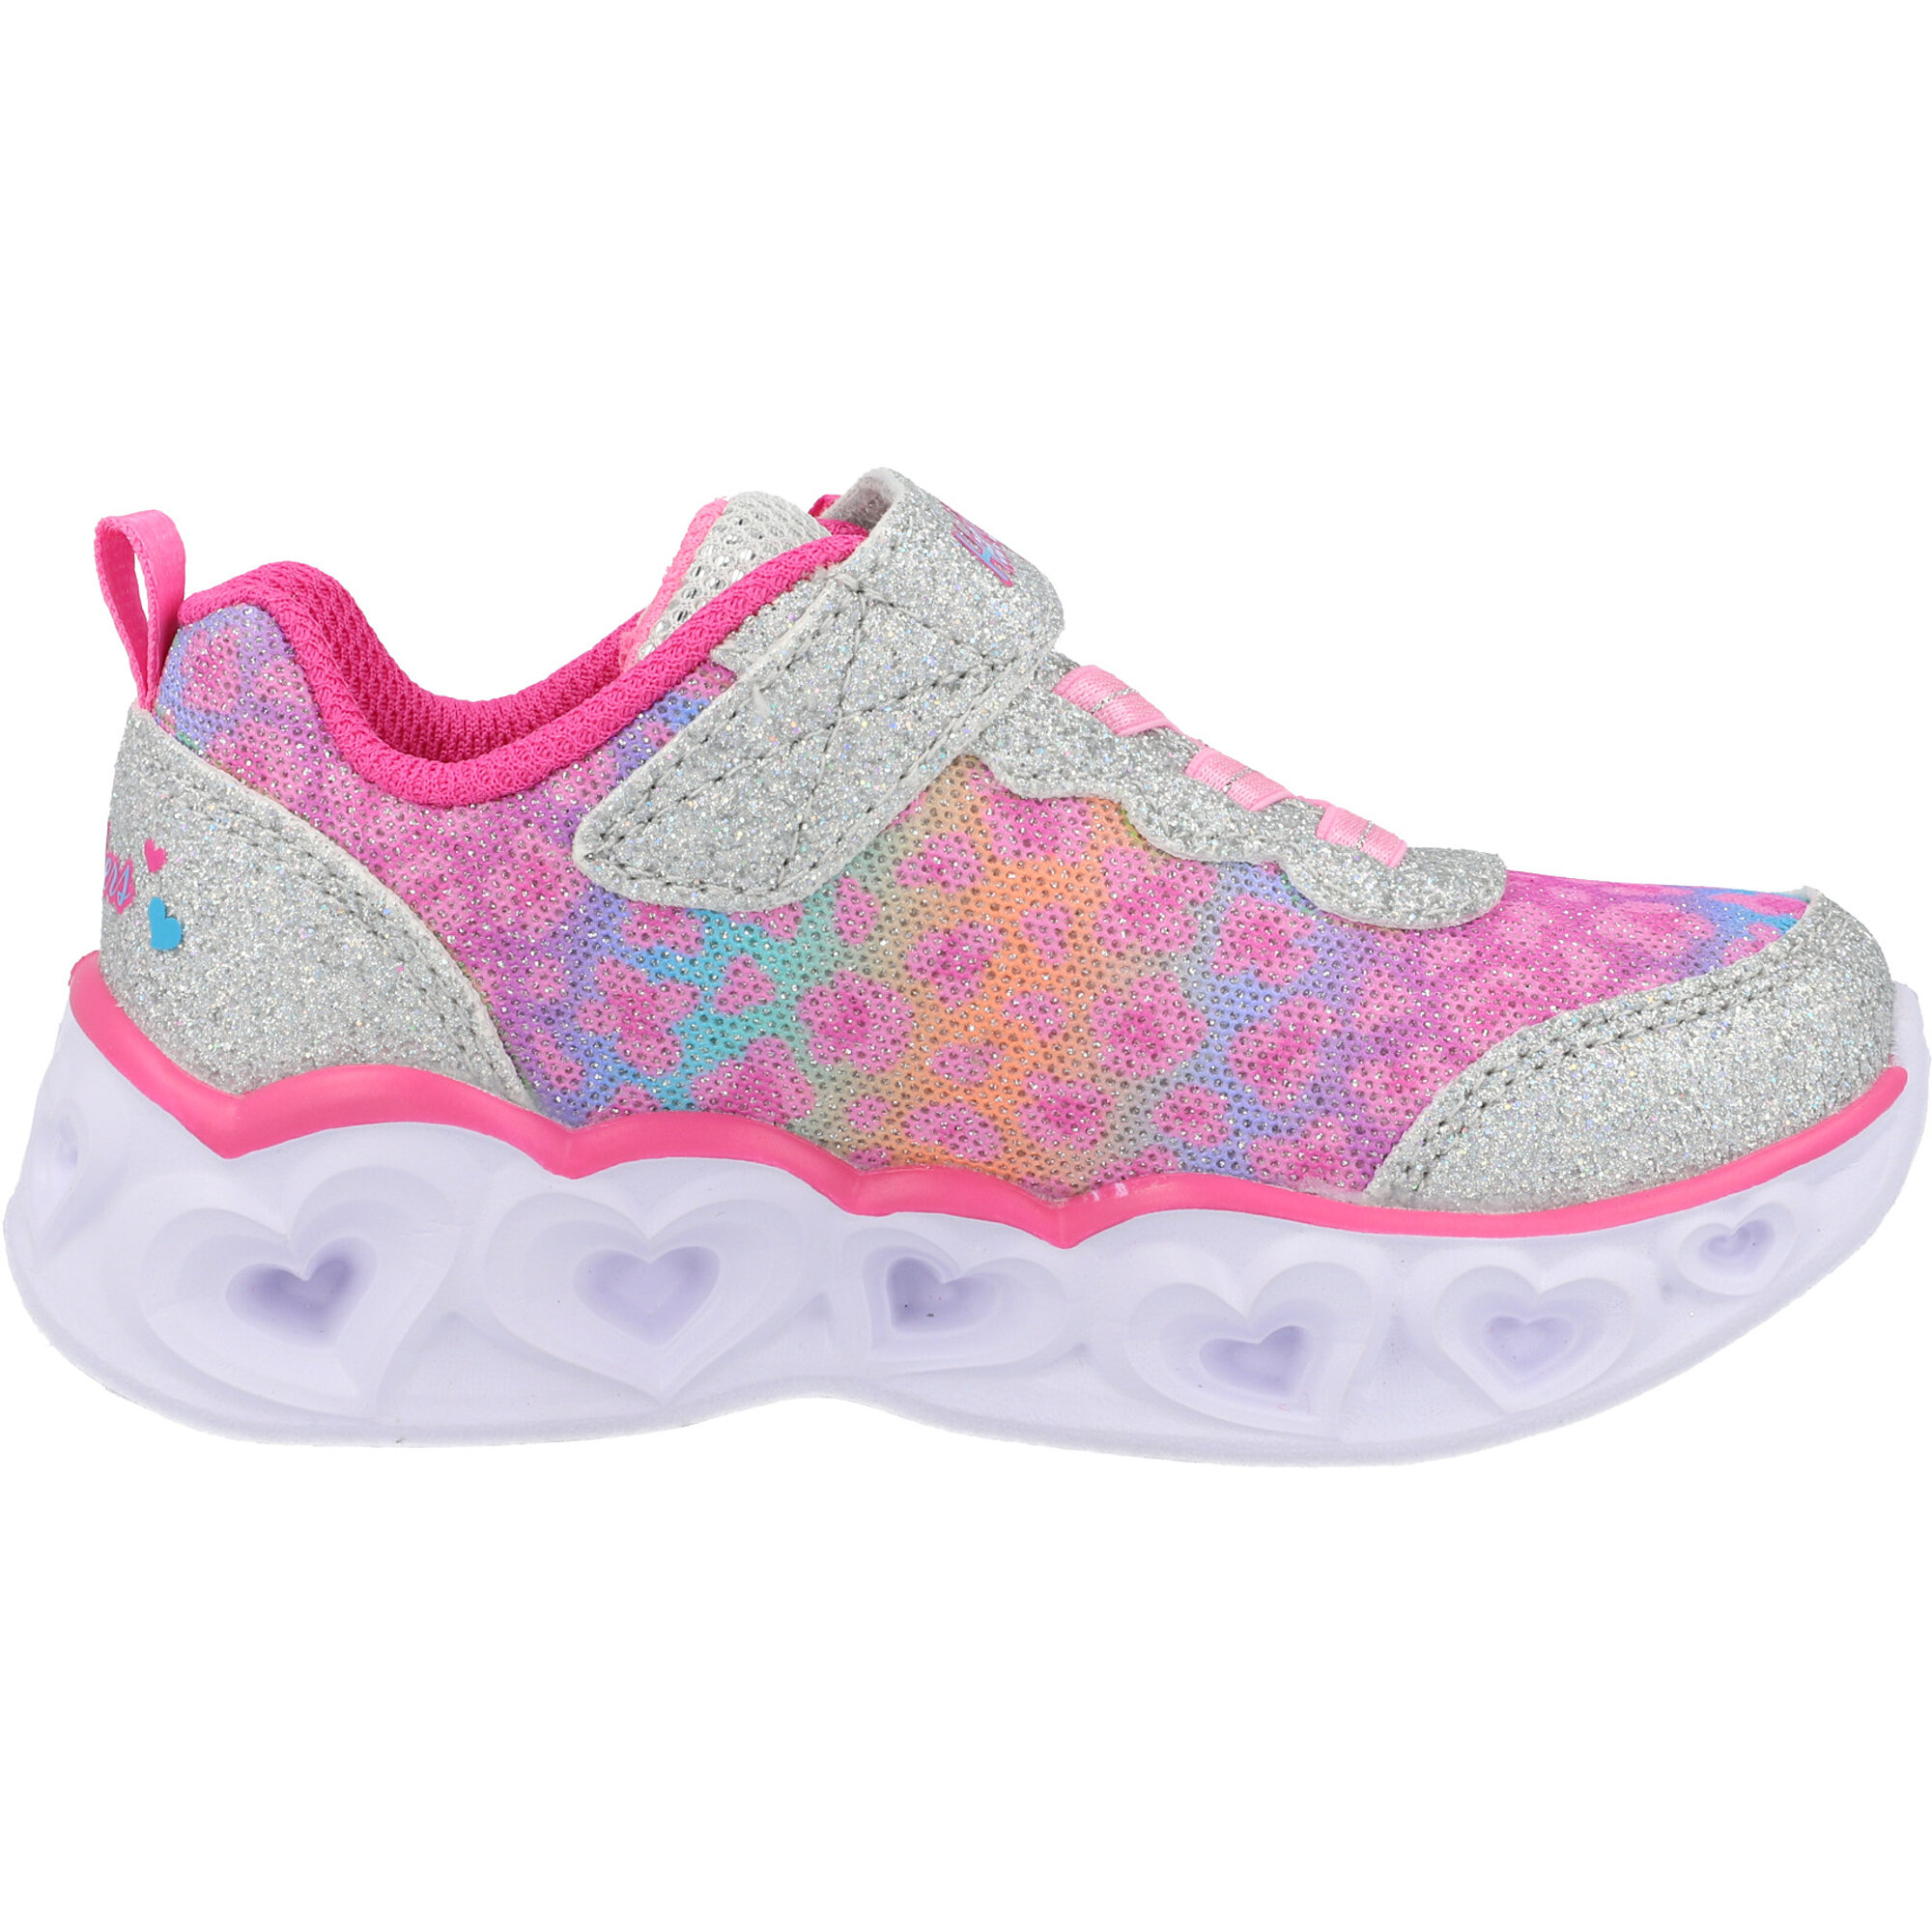 Skechers Heart Lights Silver/Hot Pink Textile